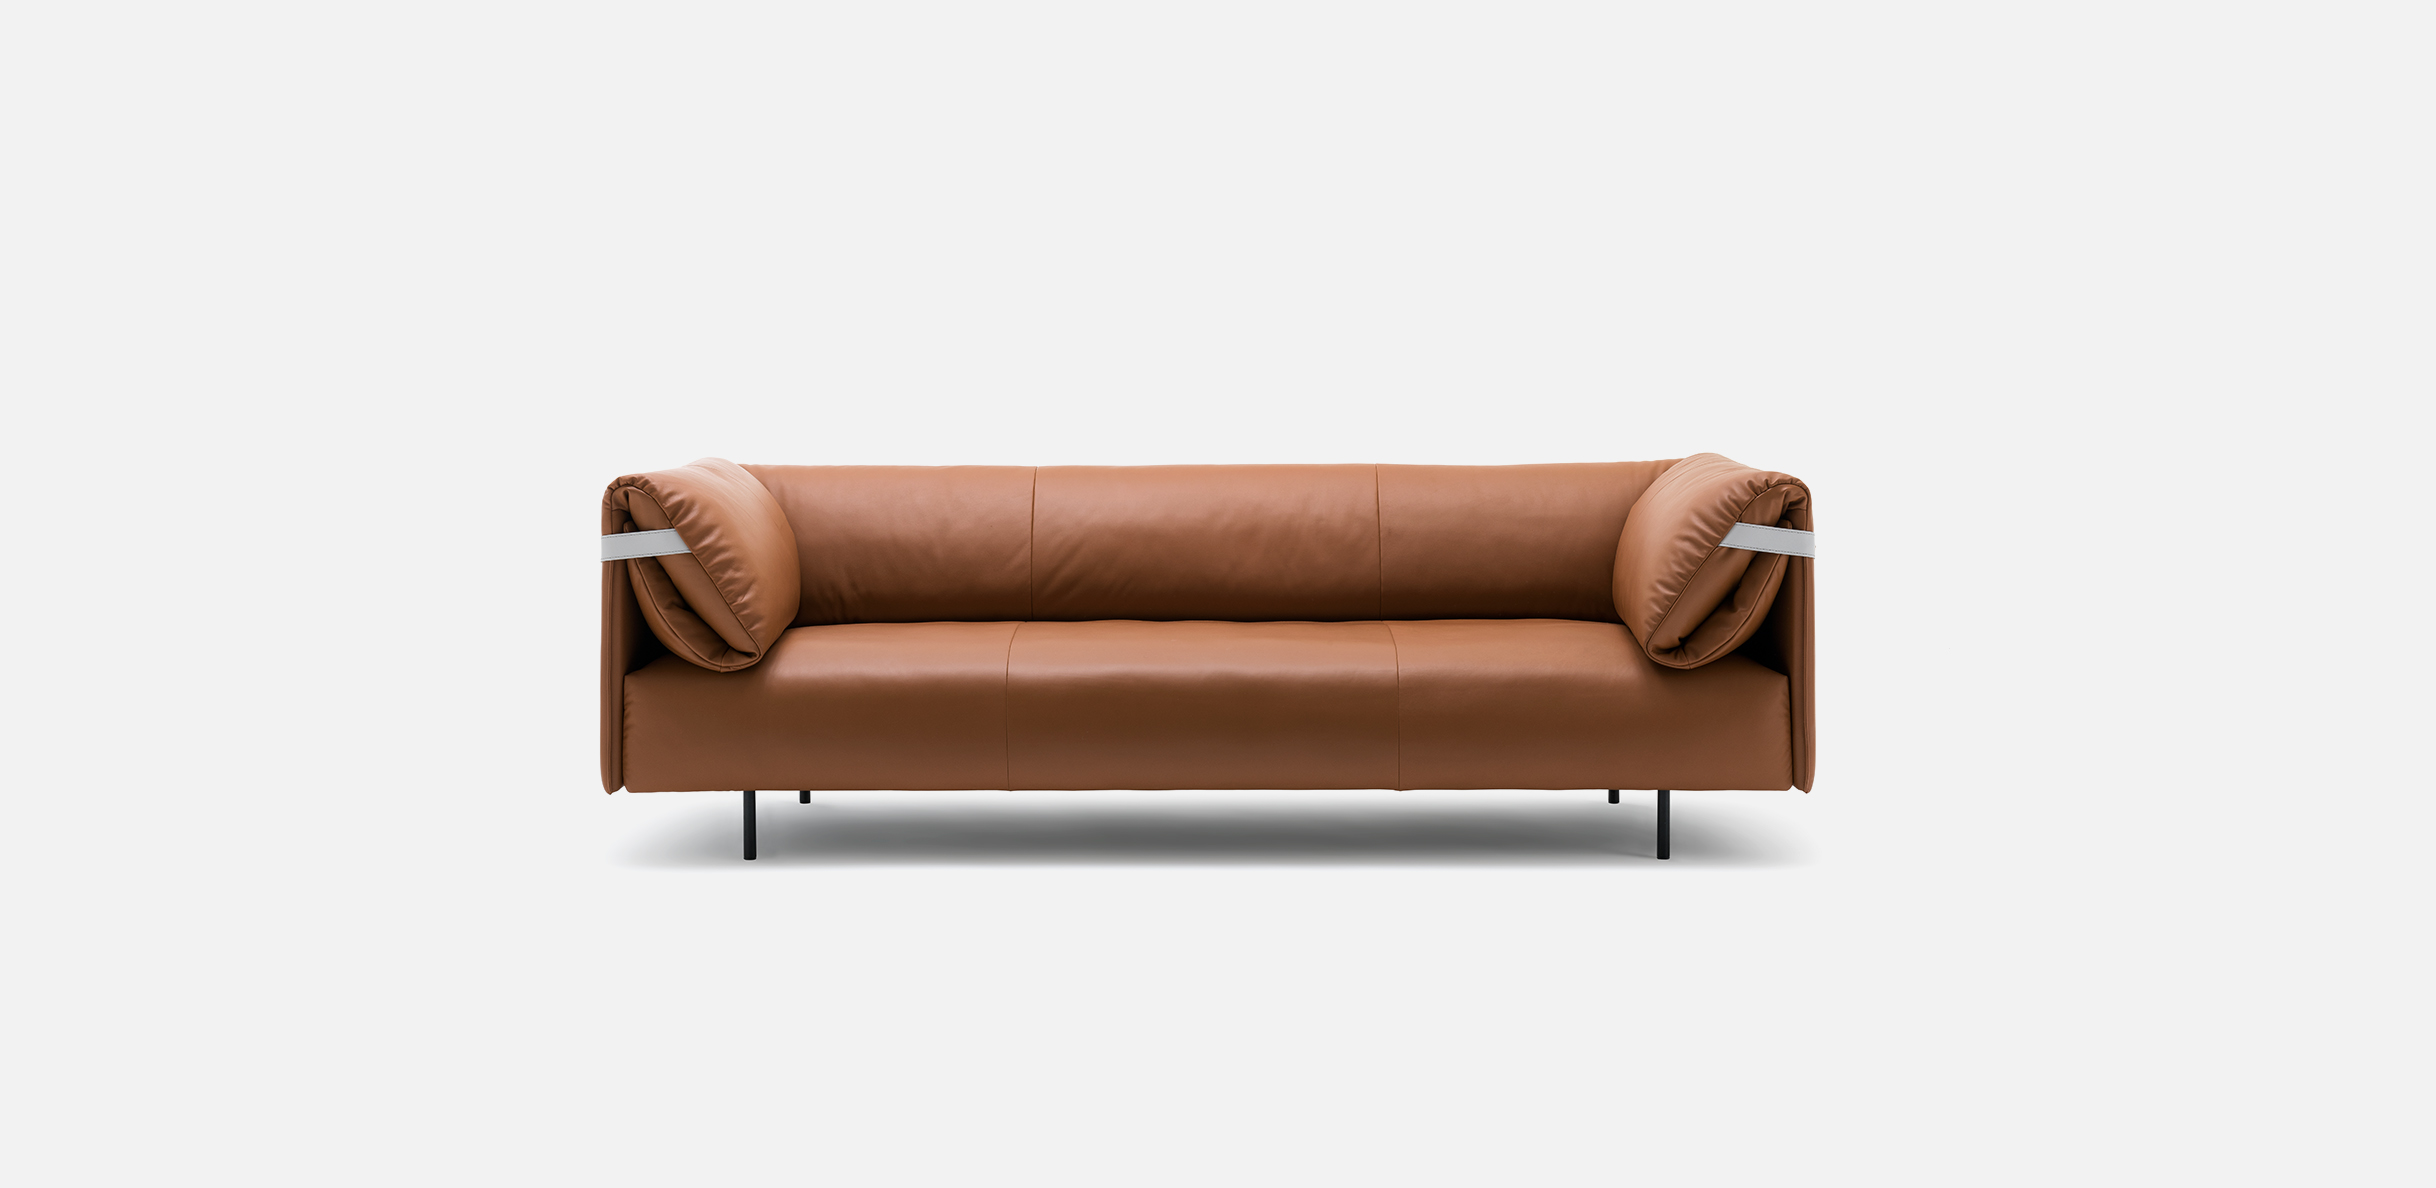 Bettsofa Rolf Benz Sofas